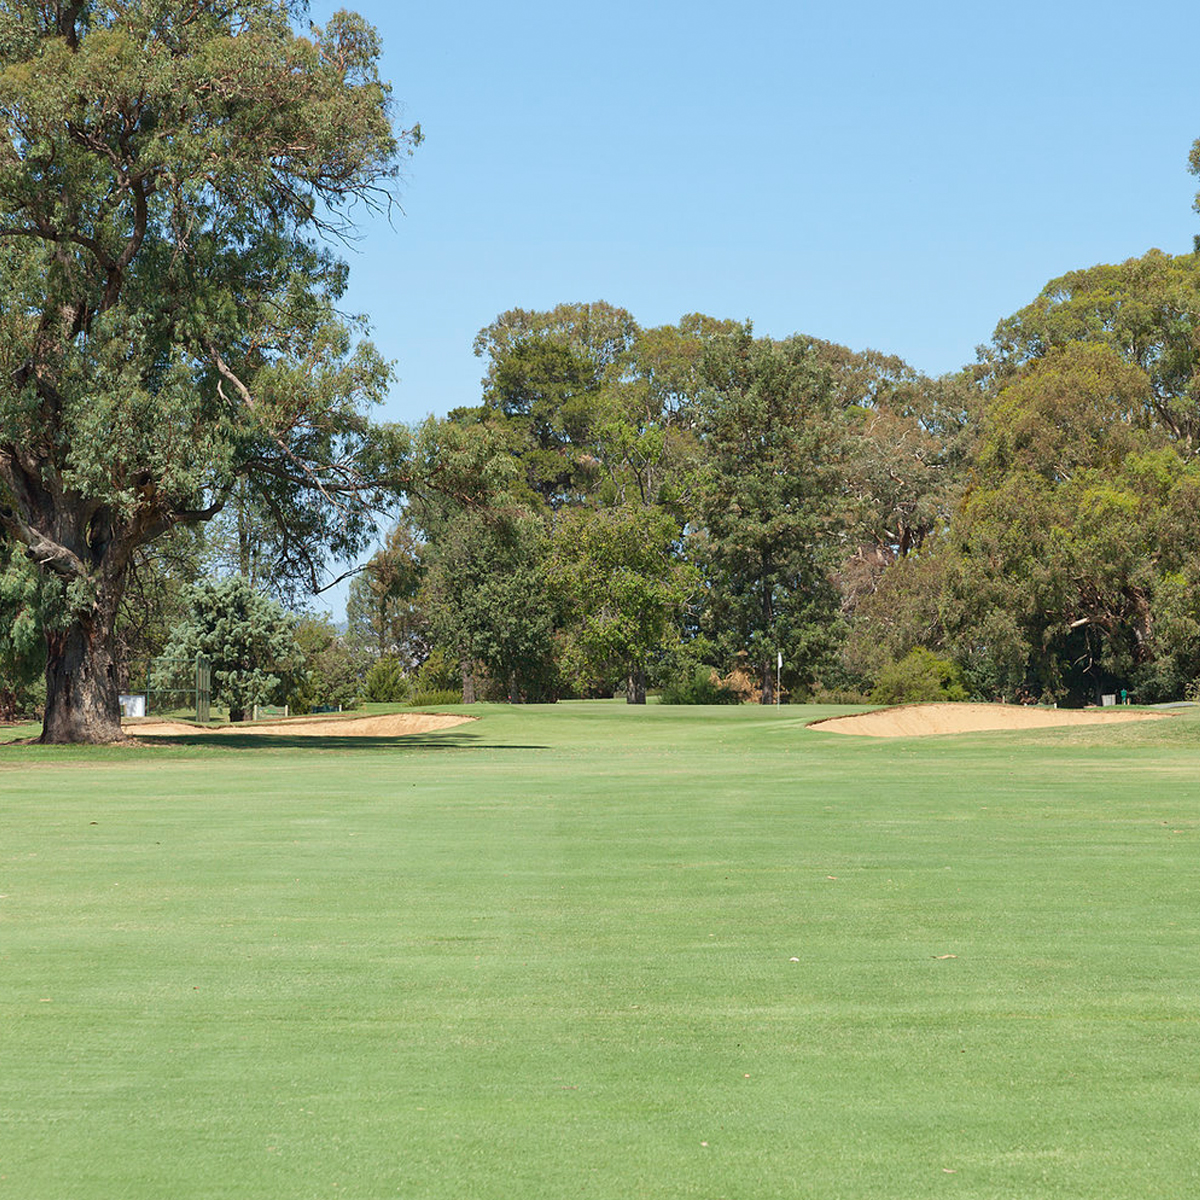 Scenery of the golf course at Howlong Golf Club